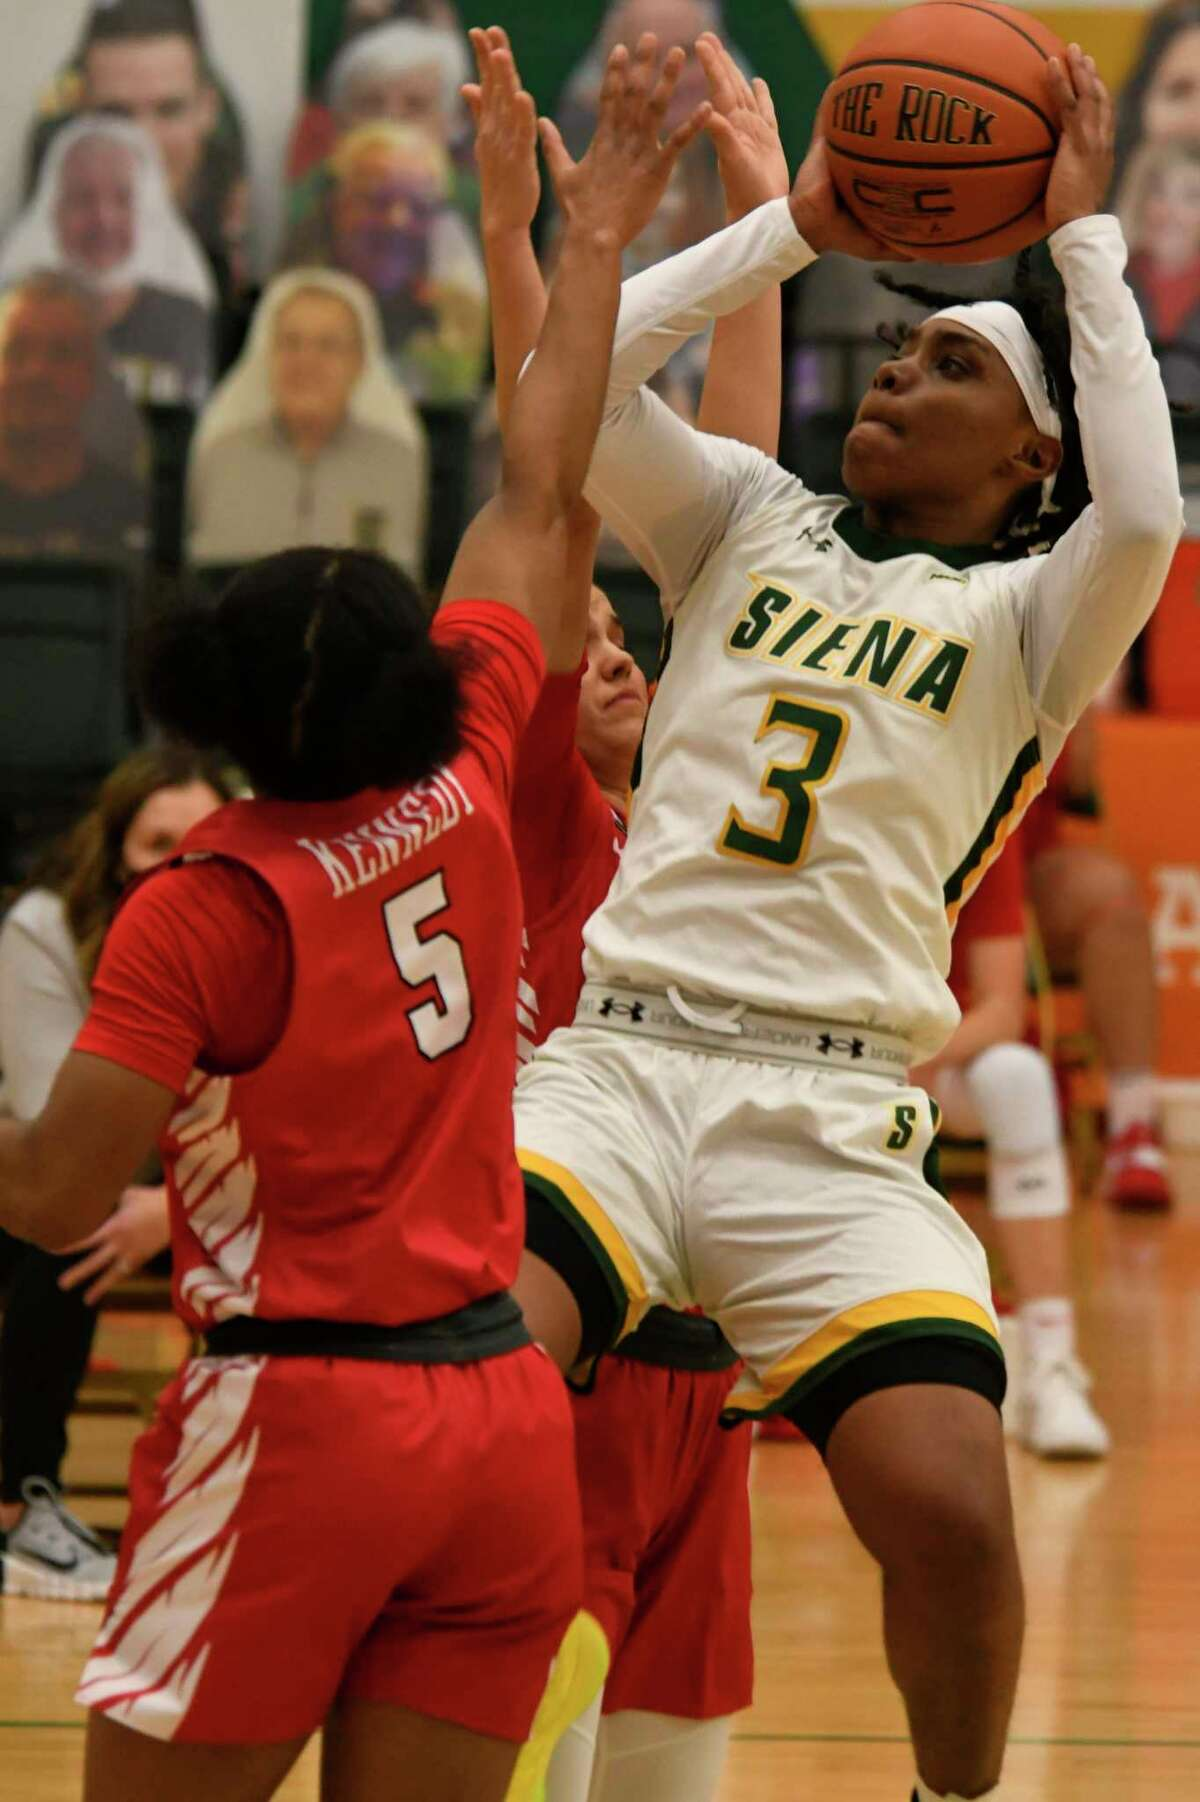 Siena's Rayshel Brown and her teammates will get to take part in the MAAC Tournament after receiving a waiver of eligibility from the NCAA.